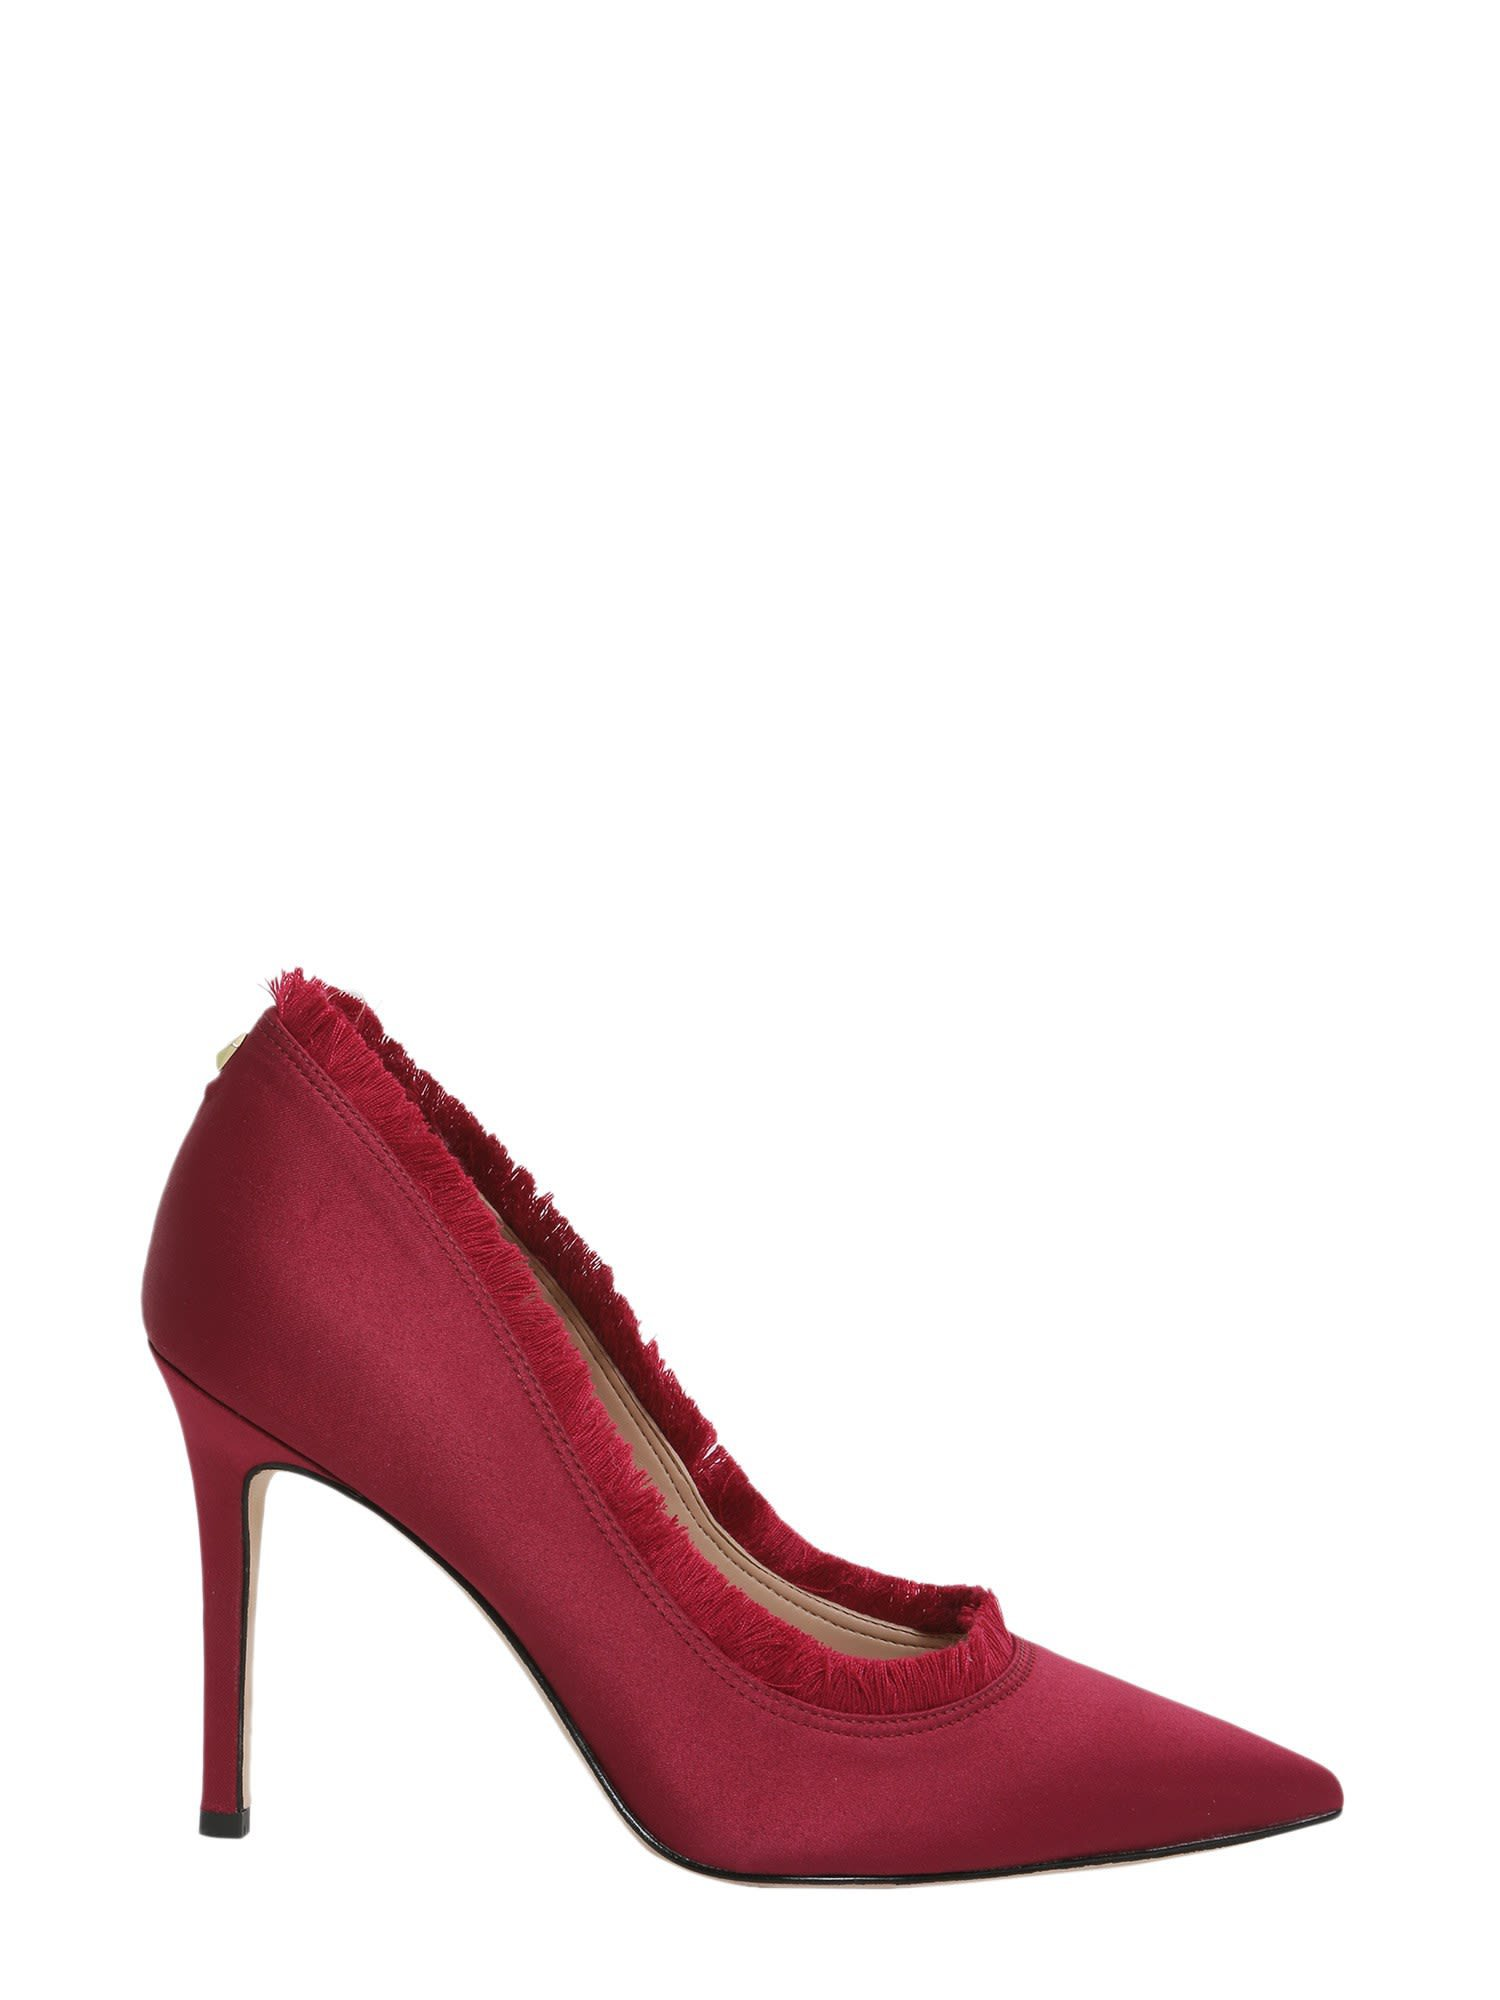 Sam Edelman Halan Pumps